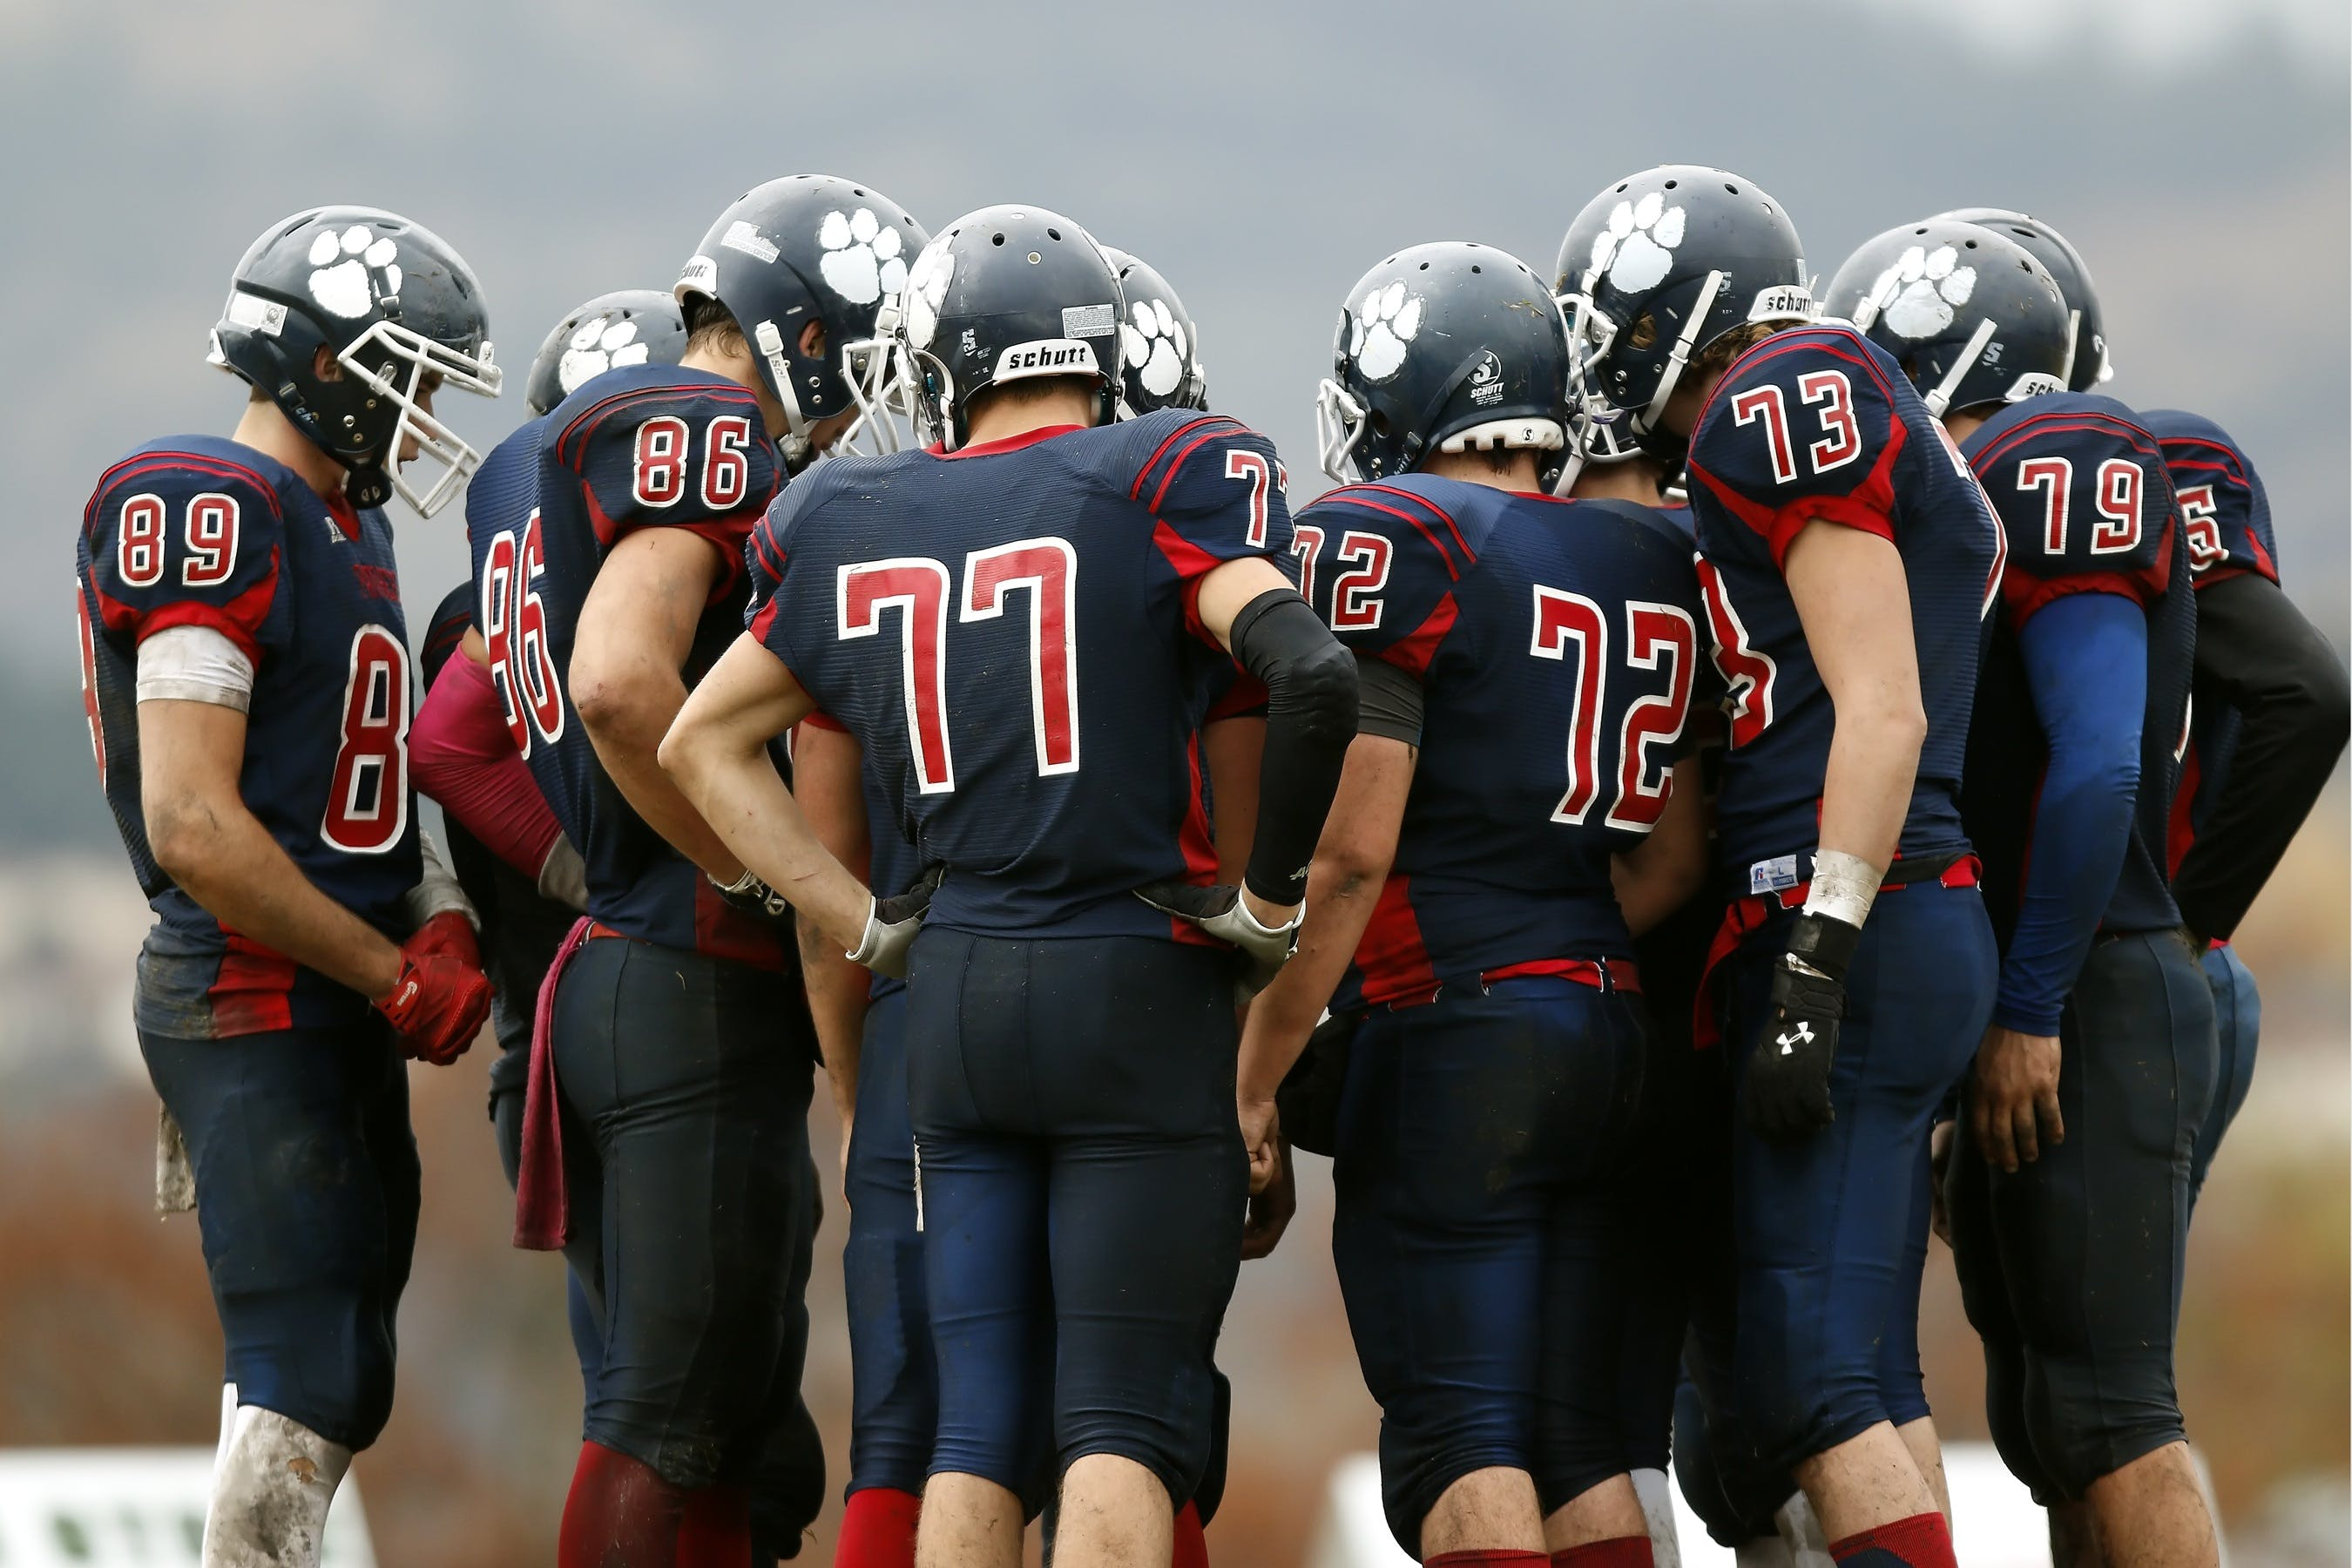 Red and Blue Football Jerseys